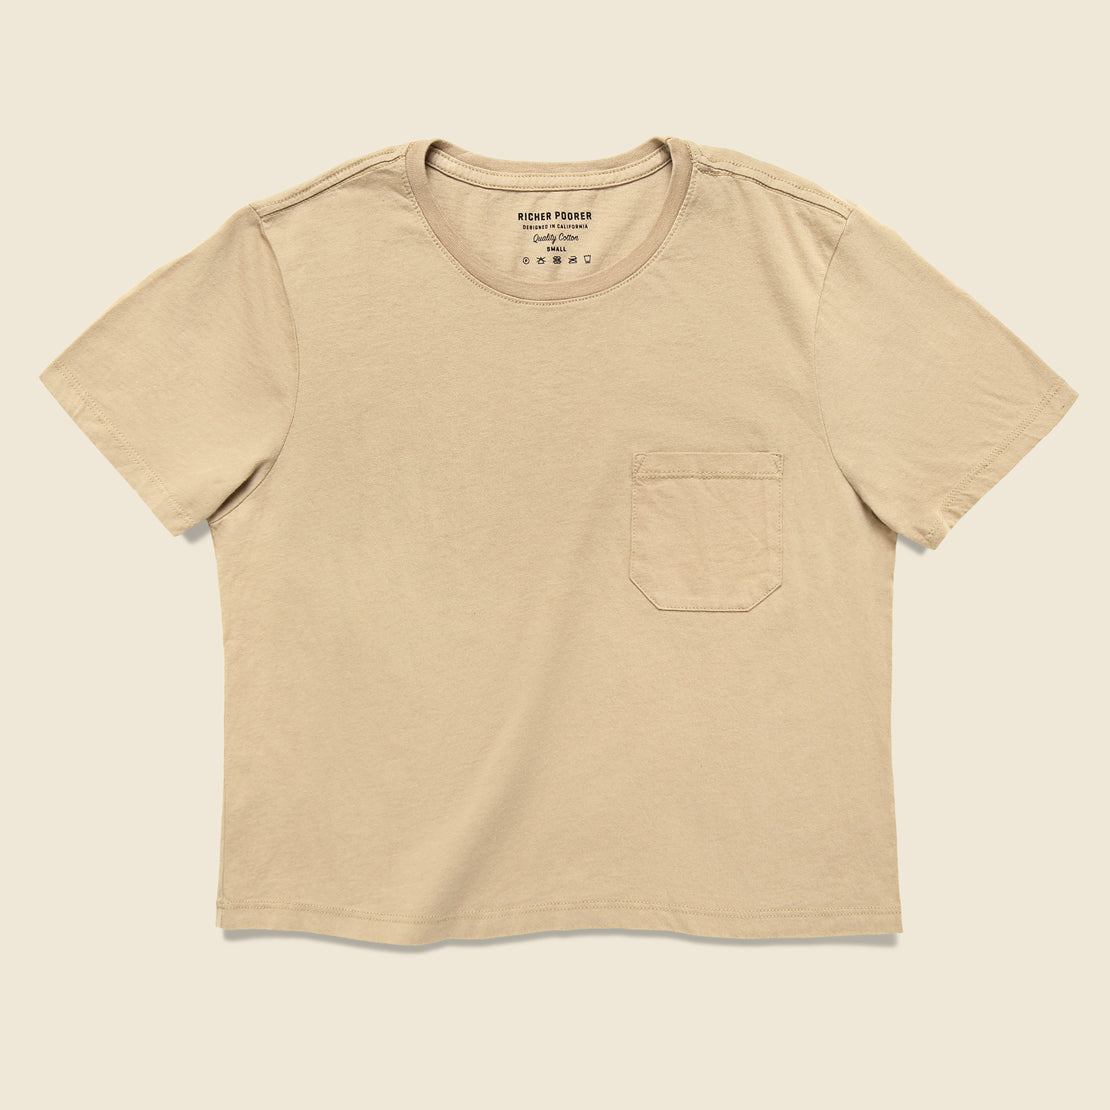 Richer Poorer Boxy Crop Tee - Tan